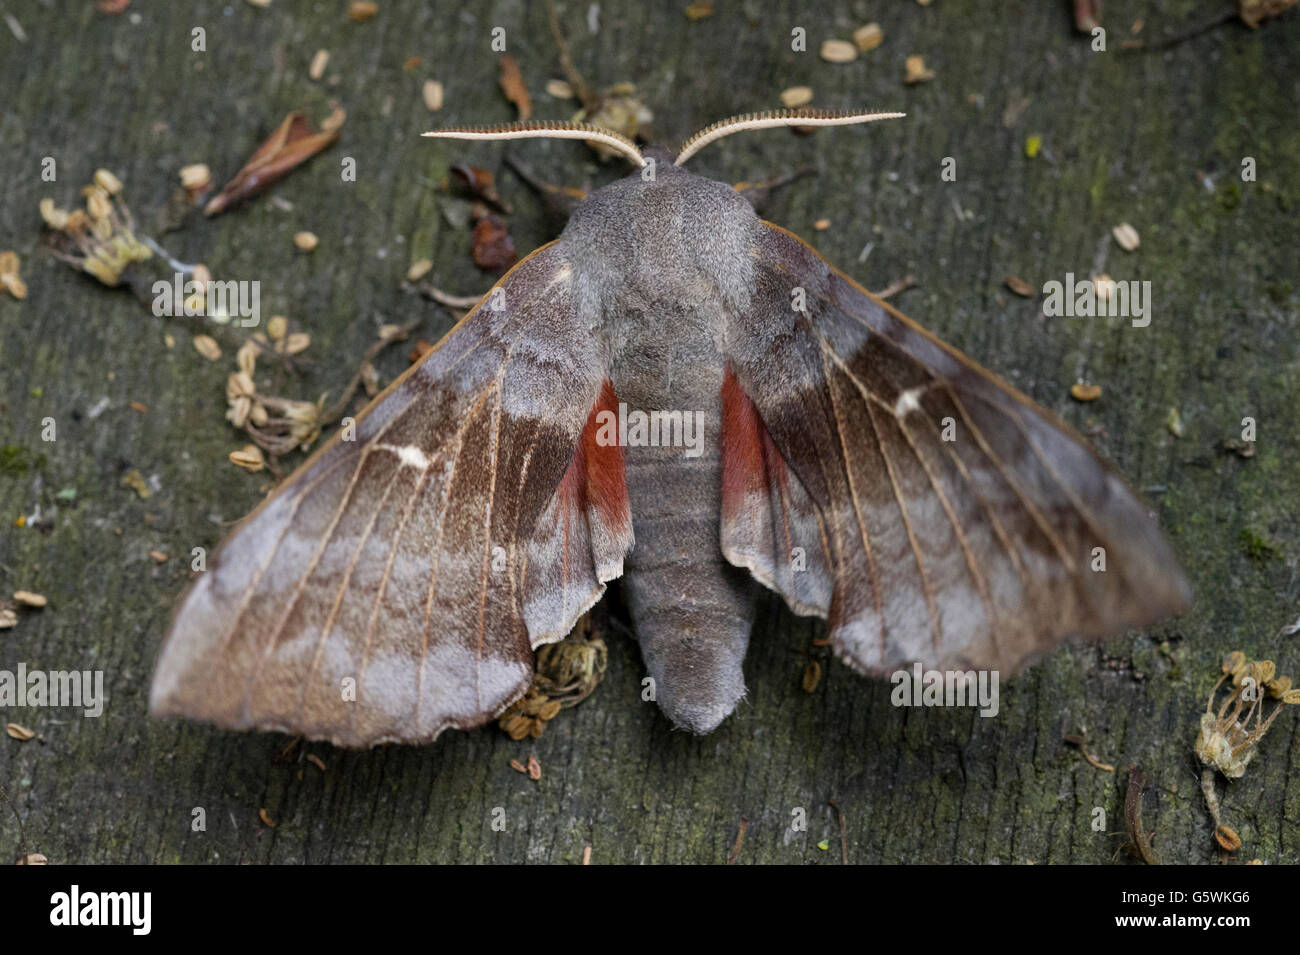 A Poplar Hawk Moth (Laothoe populi) with its wings spread while resting on an old garden table - Stock Image